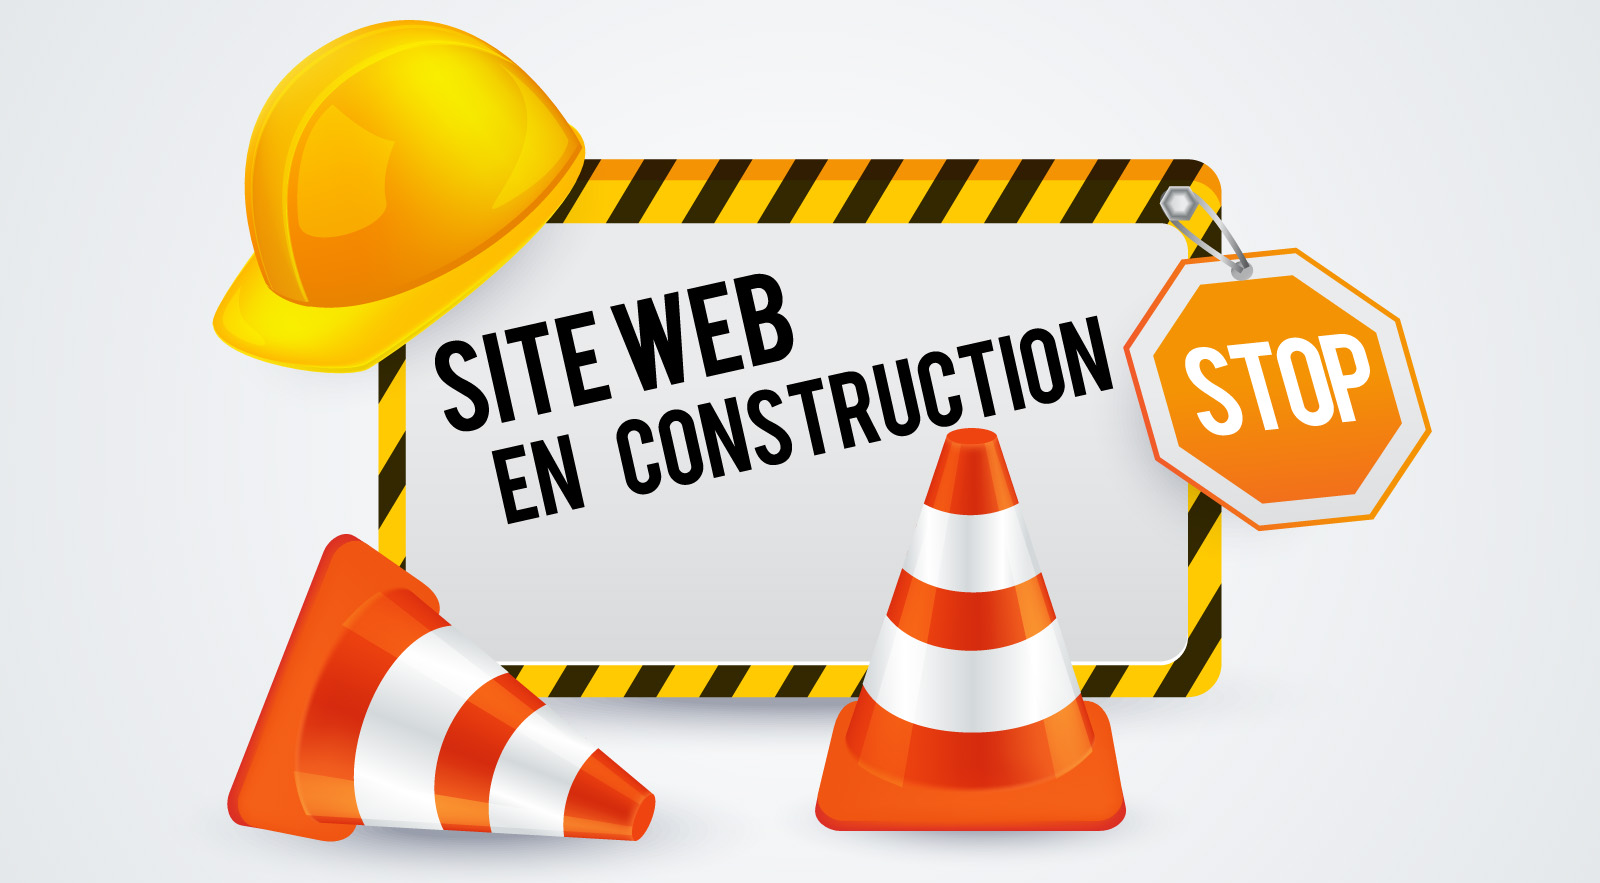 Site internet en construction